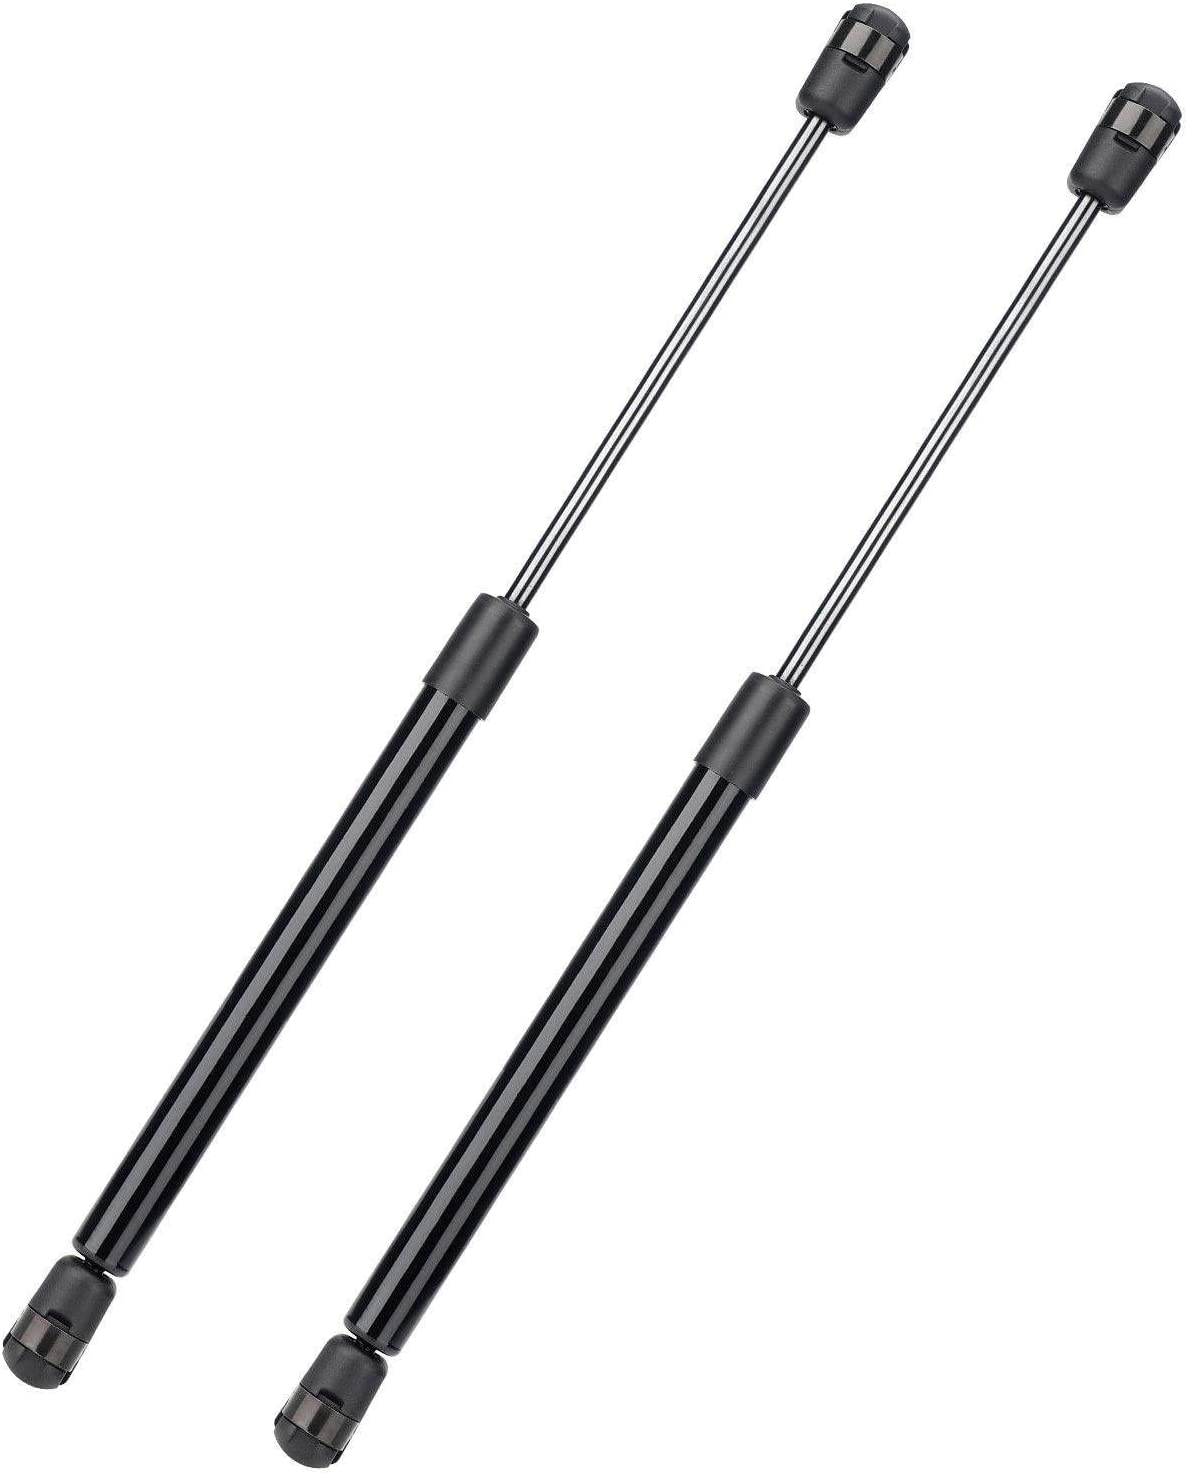 2 Pack Front and Rear Trunk Hood Lift Struts Kit Supports for Tesla Model 3,Front